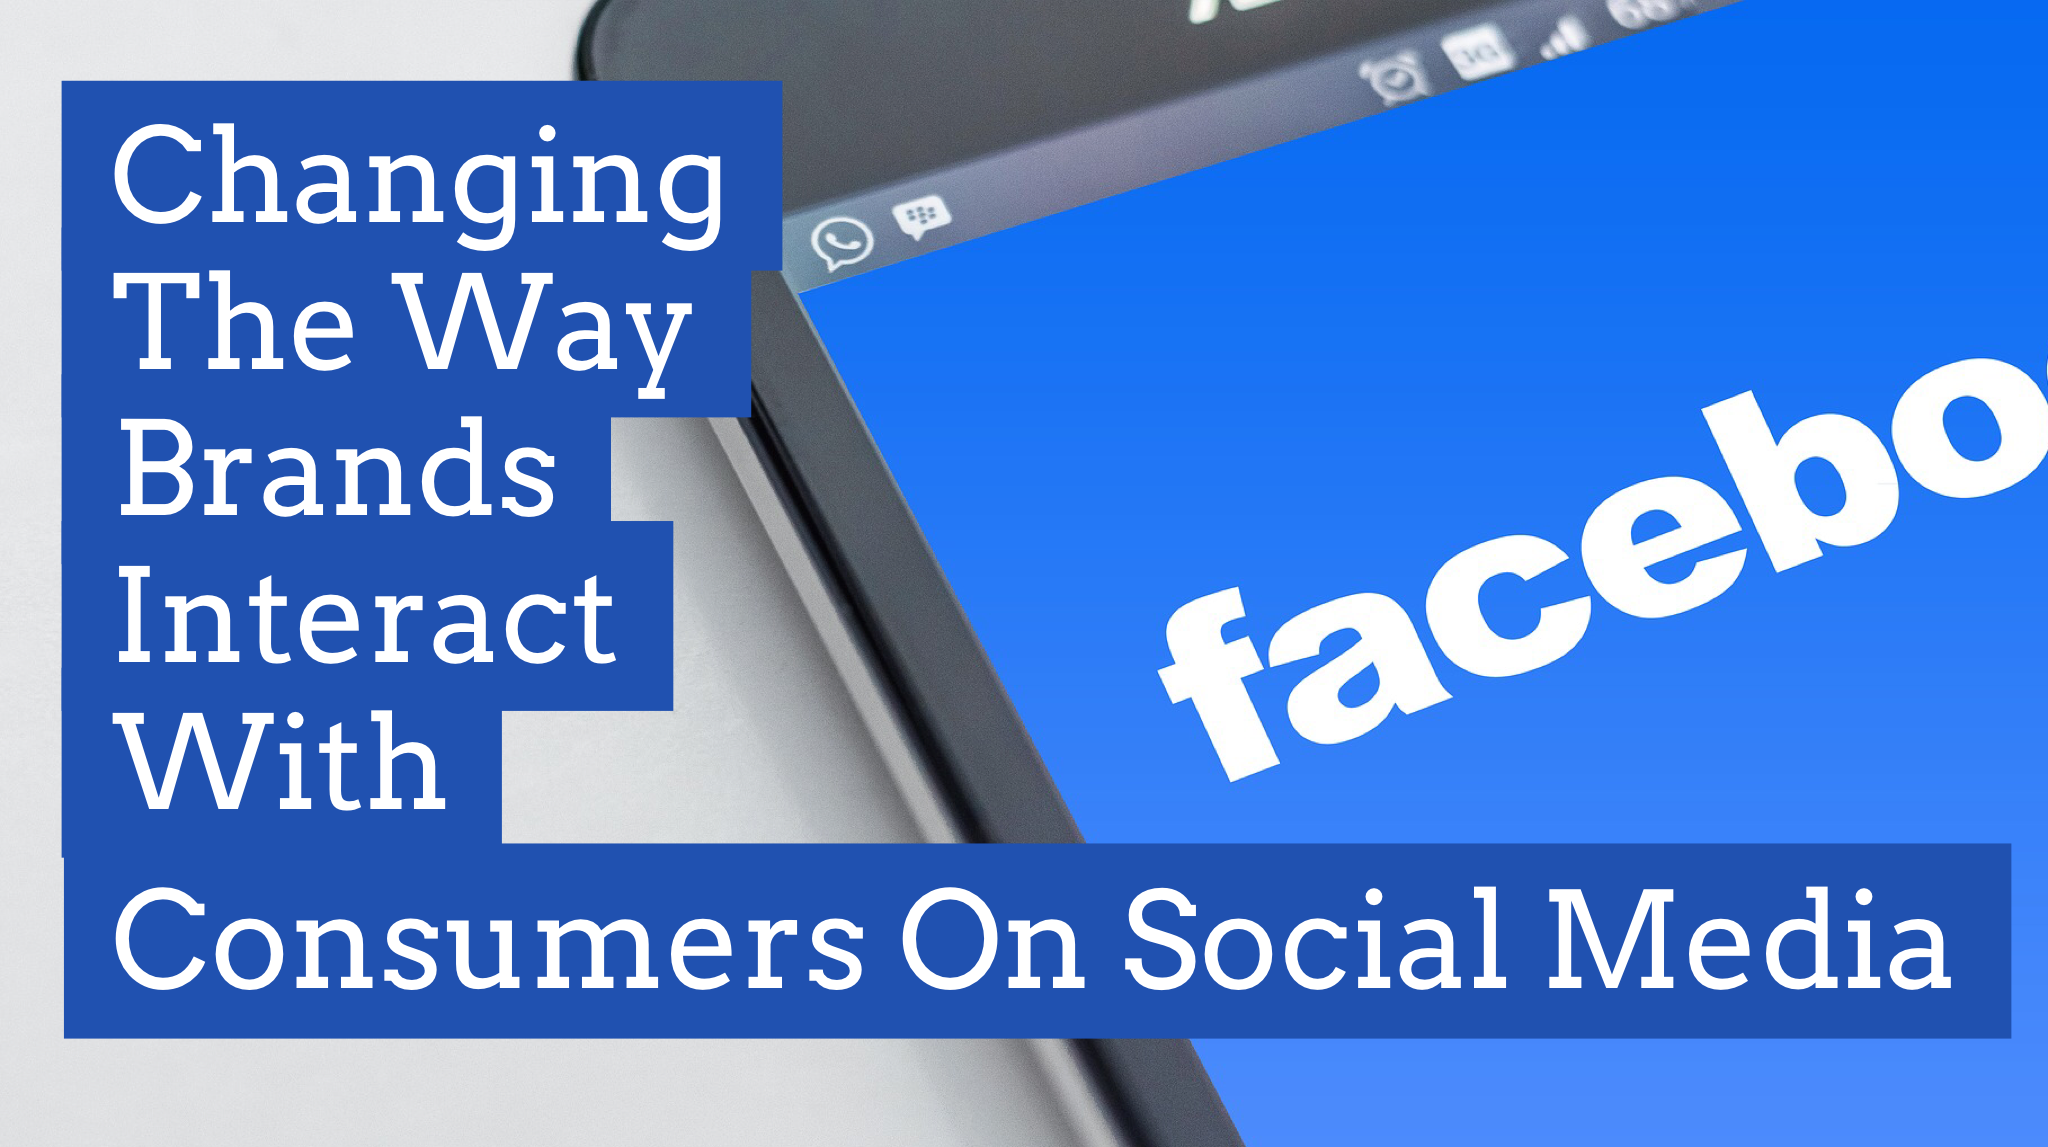 Changing the Way Brands Interact with Consumers on Social Media